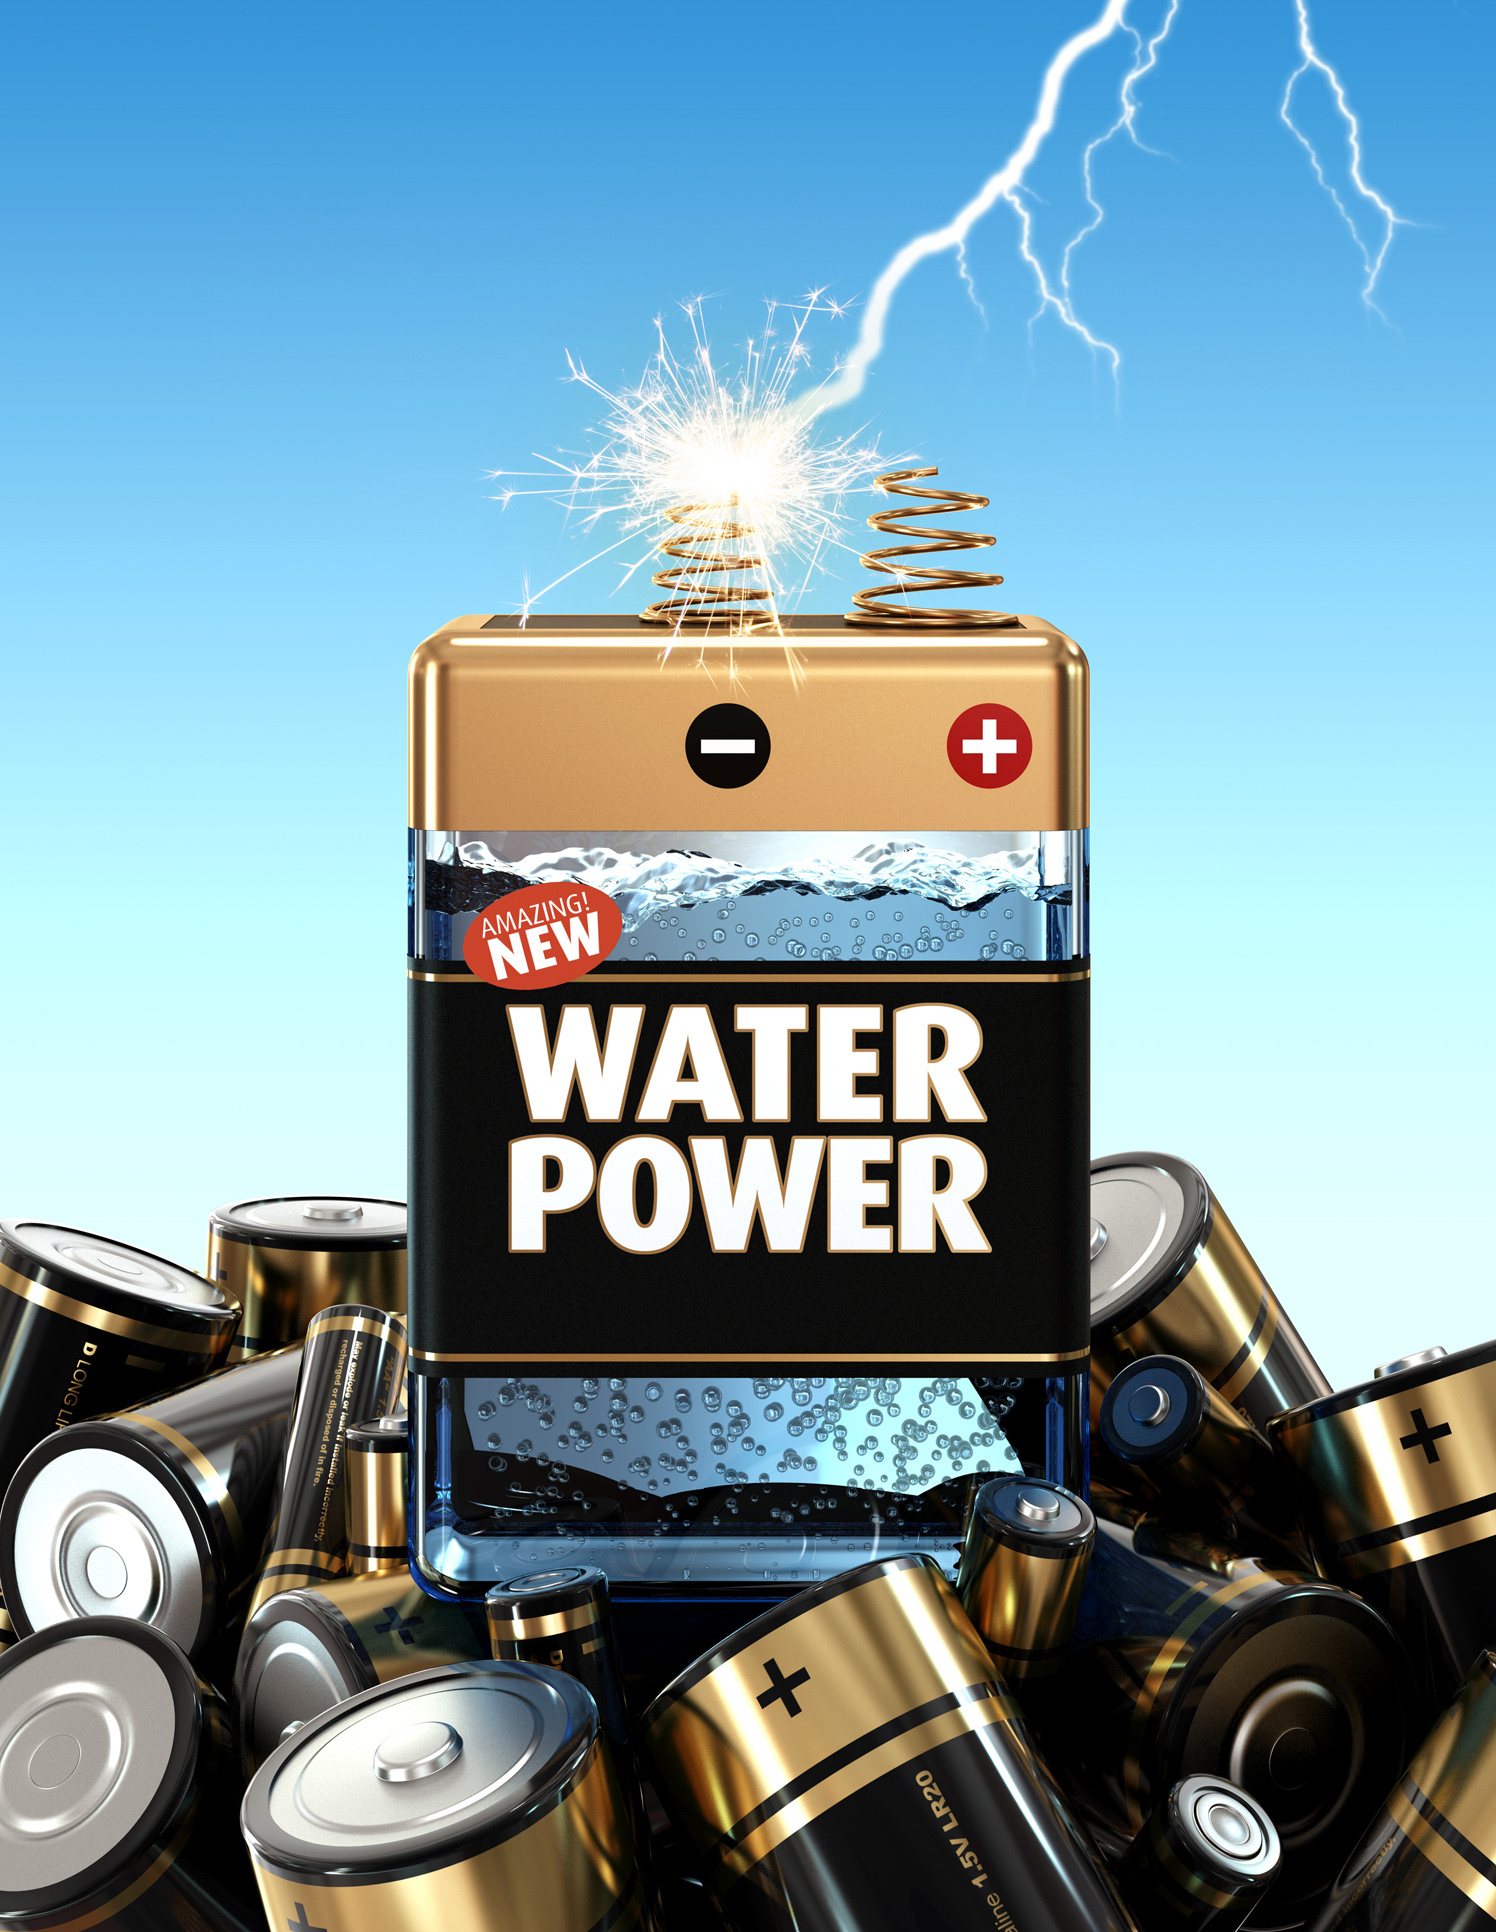 Water Power / Focus Magazine